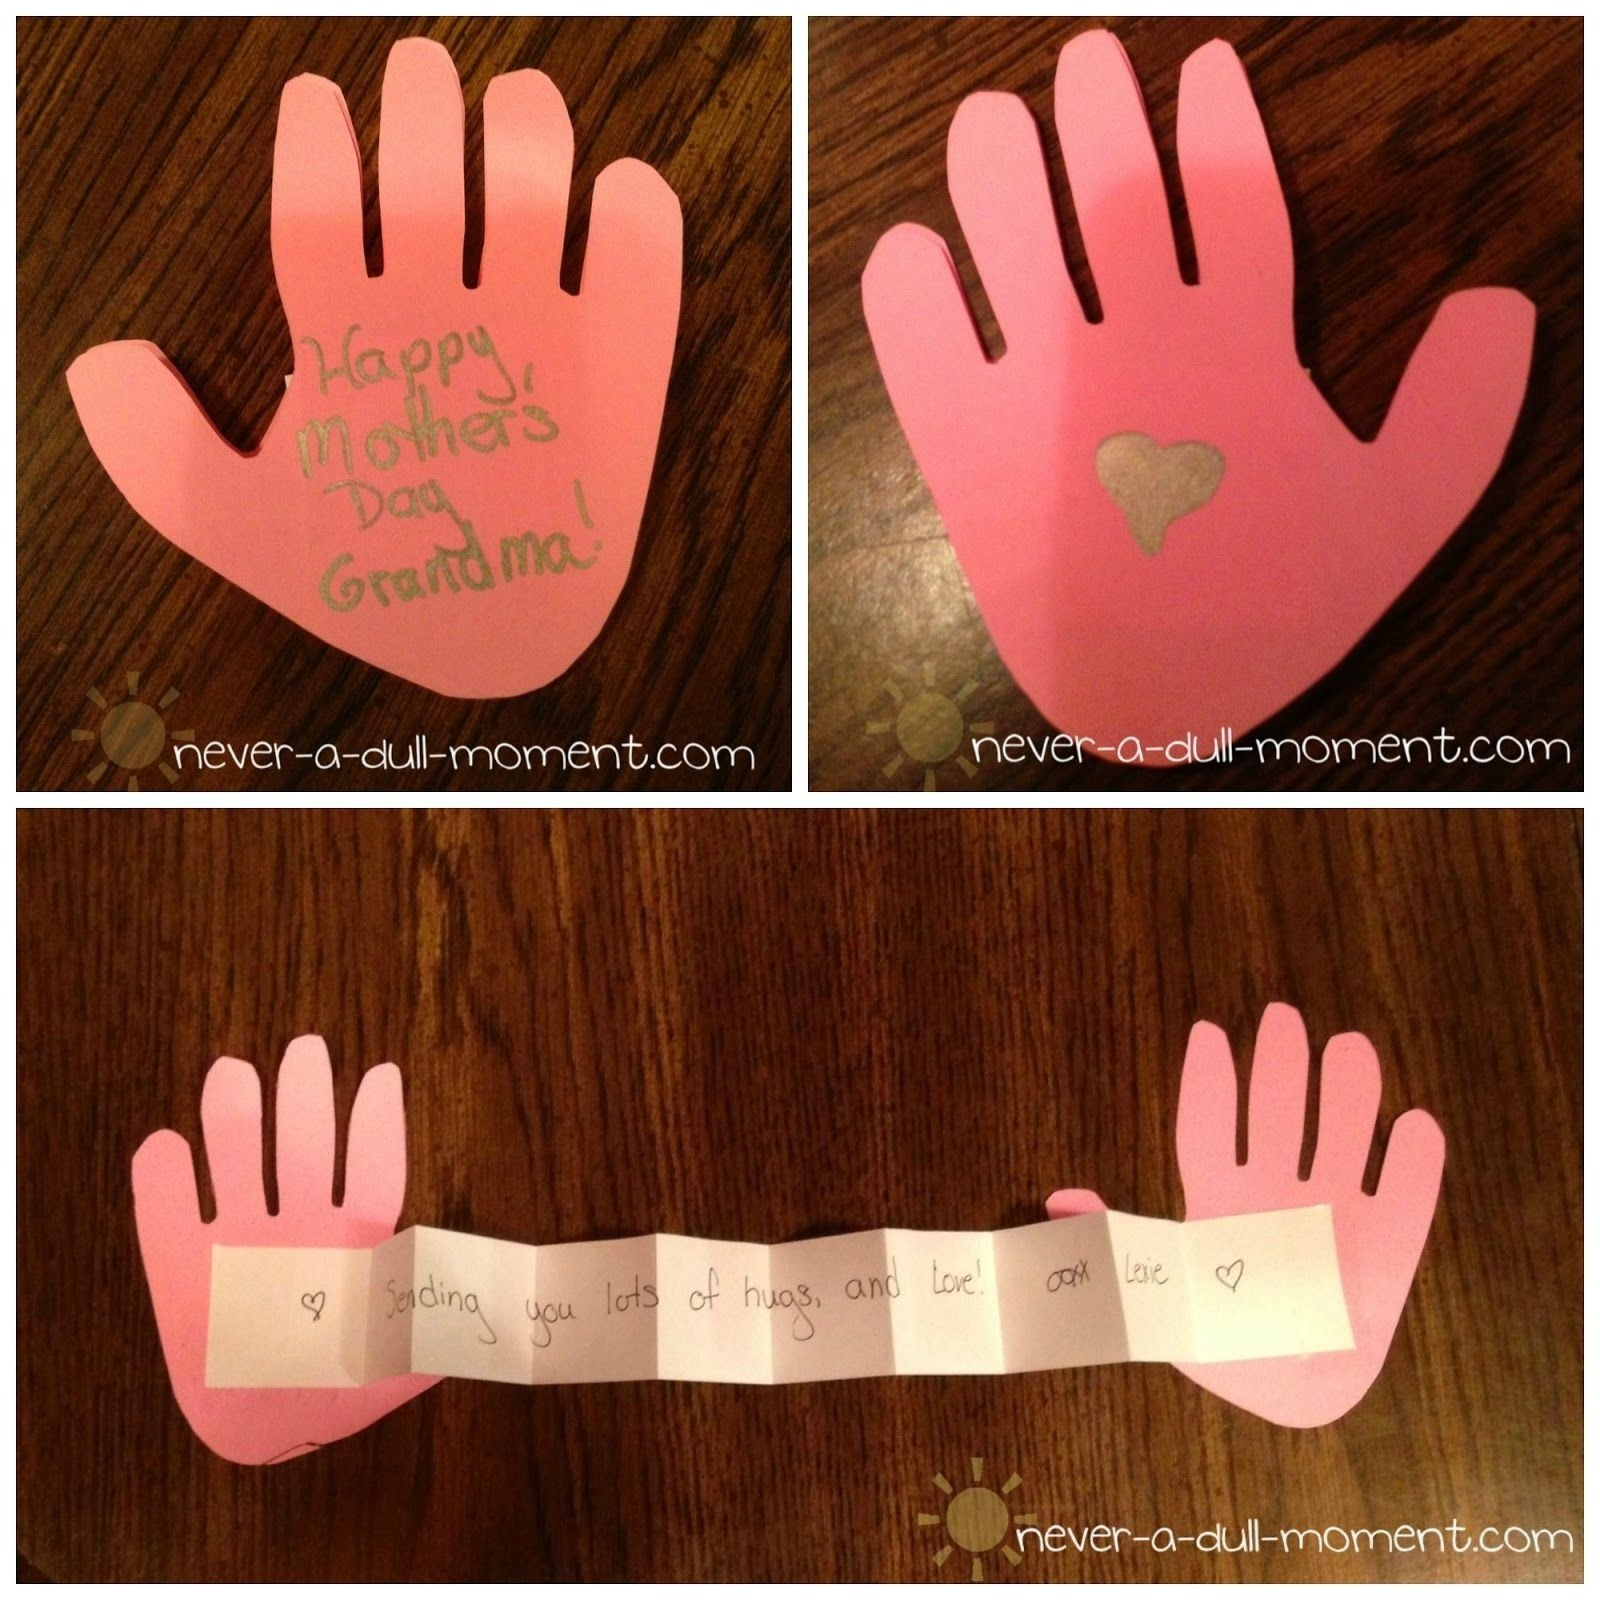 sweet stella's: handmade mother's day gifts | speech therapy ideas